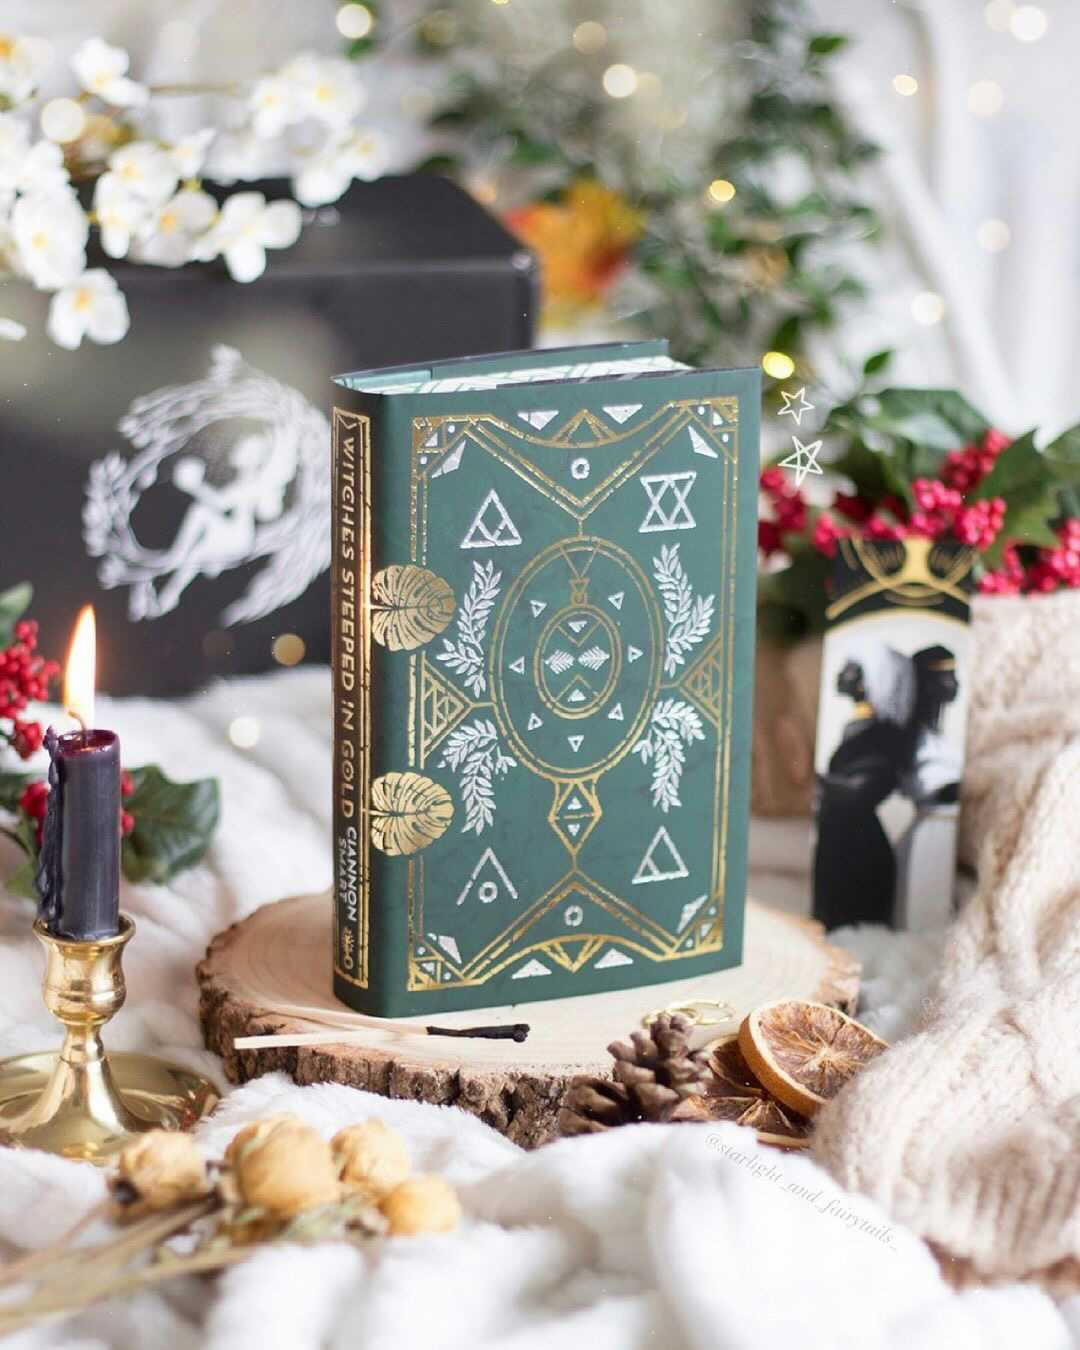 Witches Steeped in Gold Readalong Day 4!